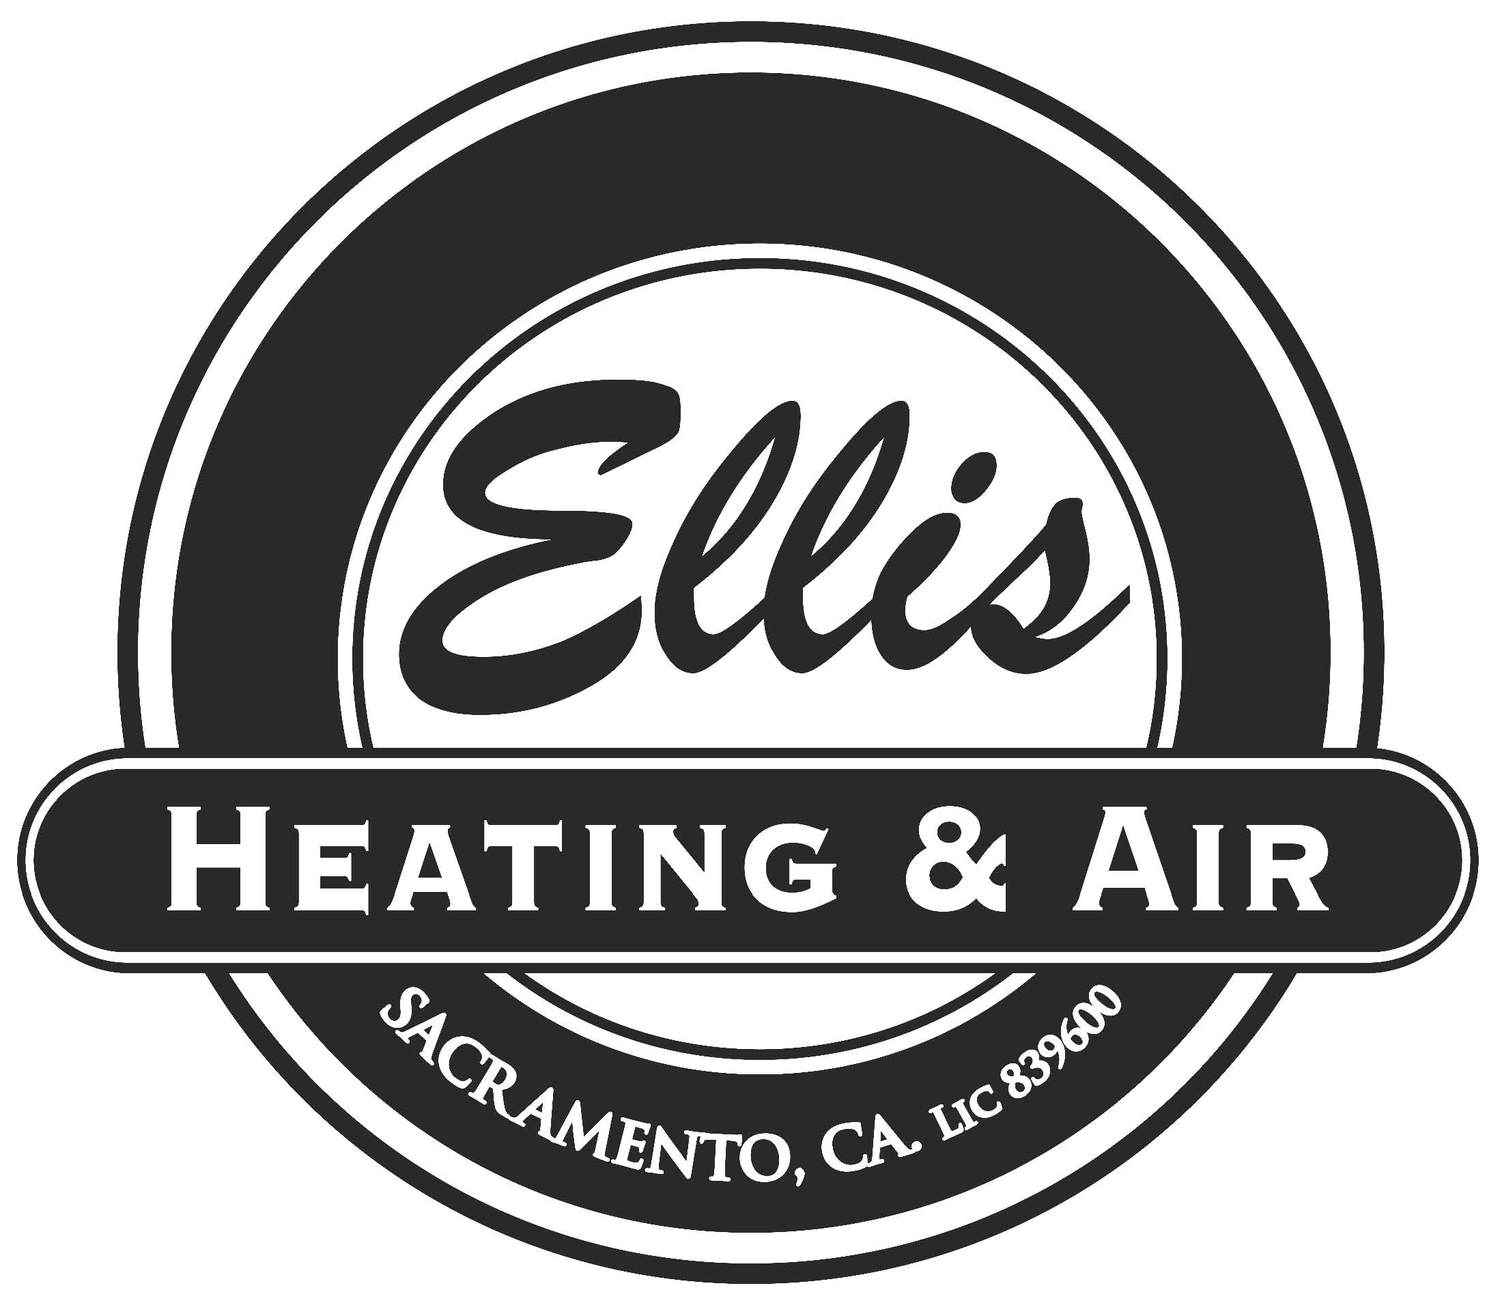 Ellis Heating & Air